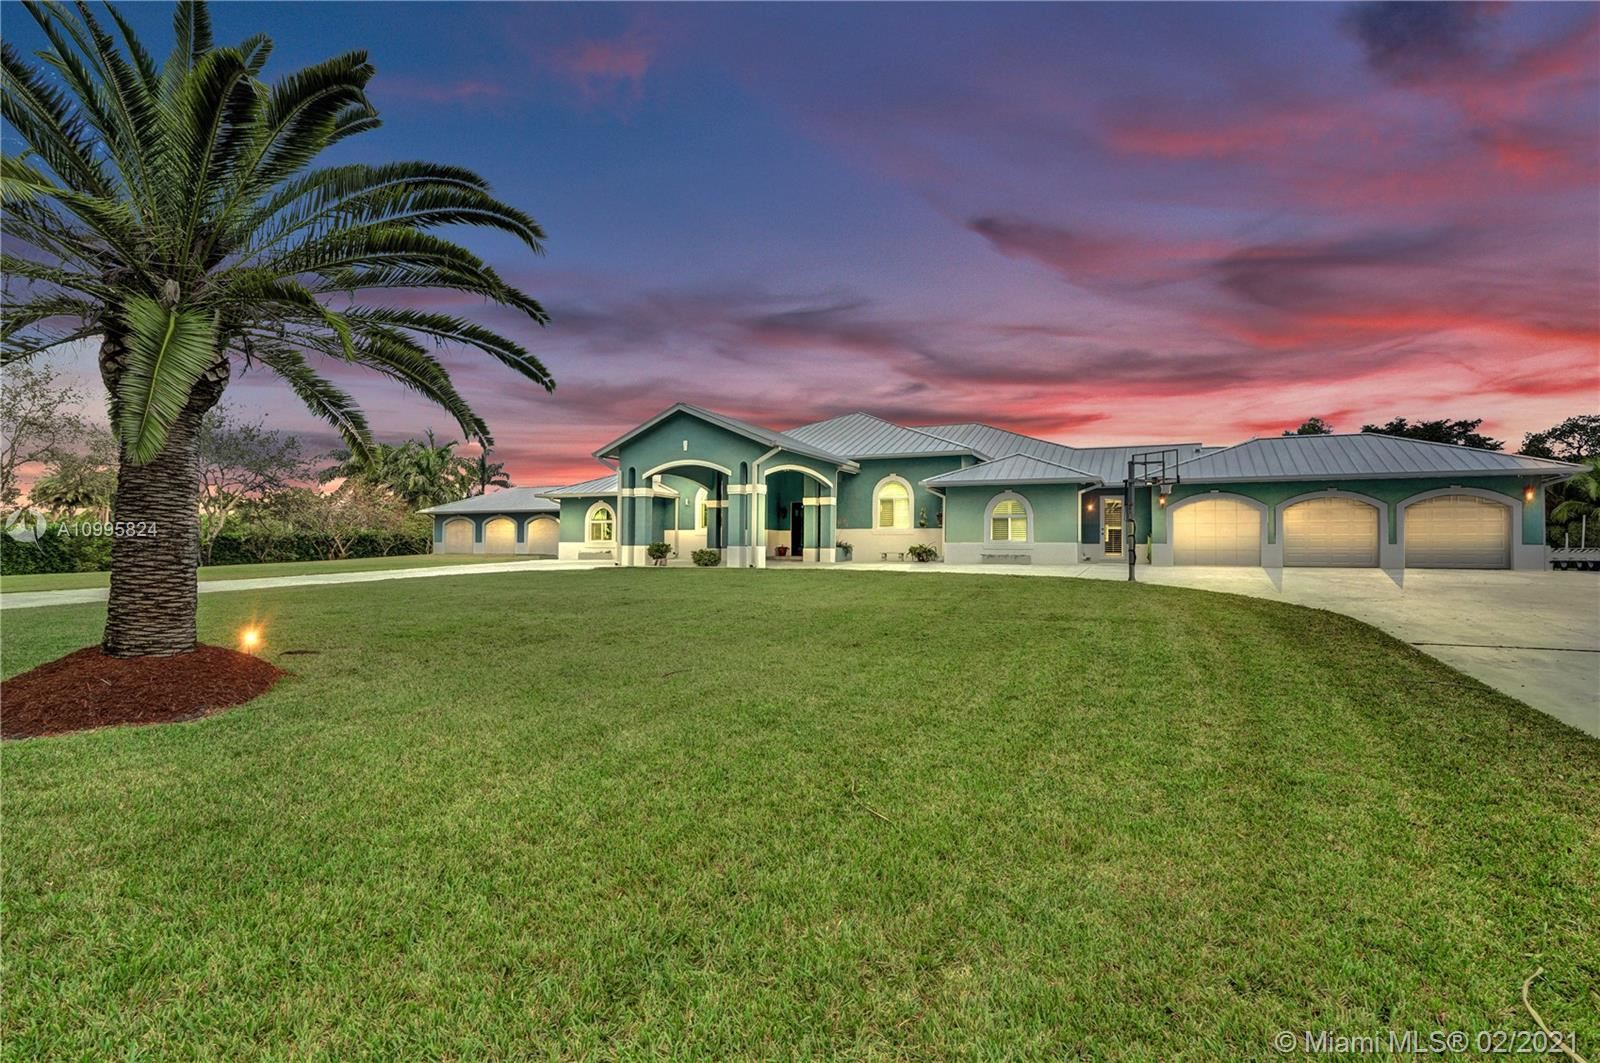 5800 SW 198th Ter, SouthWest Ranches, FL 33332 - #: A10995824